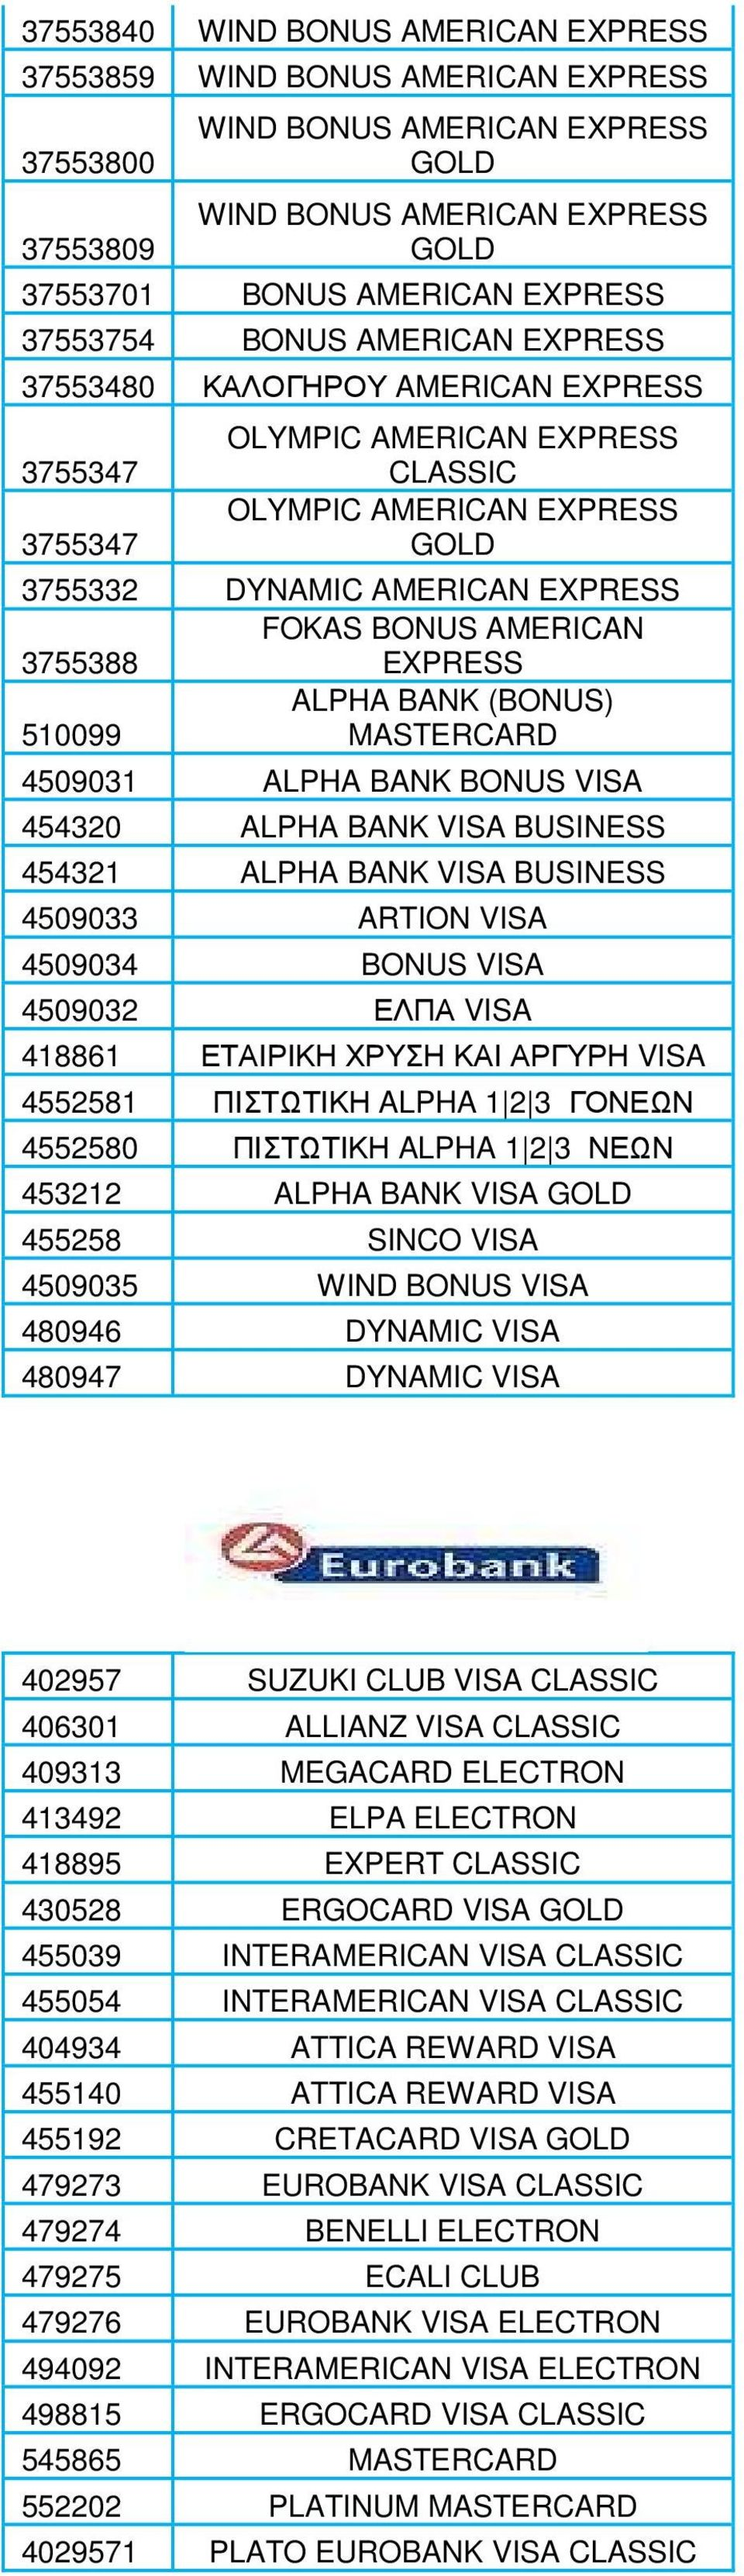 EXPRESS ALPHA BANK (BONUS) 510099 MASTERCARD 4509031 ALPHA BANK BONUS VISA 454320 ALPHA BANK VISA BUSINESS 454321 ALPHA BANK VISA BUSINESS 4509033 ARTION VISA 4509034 BONUS VISA 4509032 ΕΛΠΑ VISA